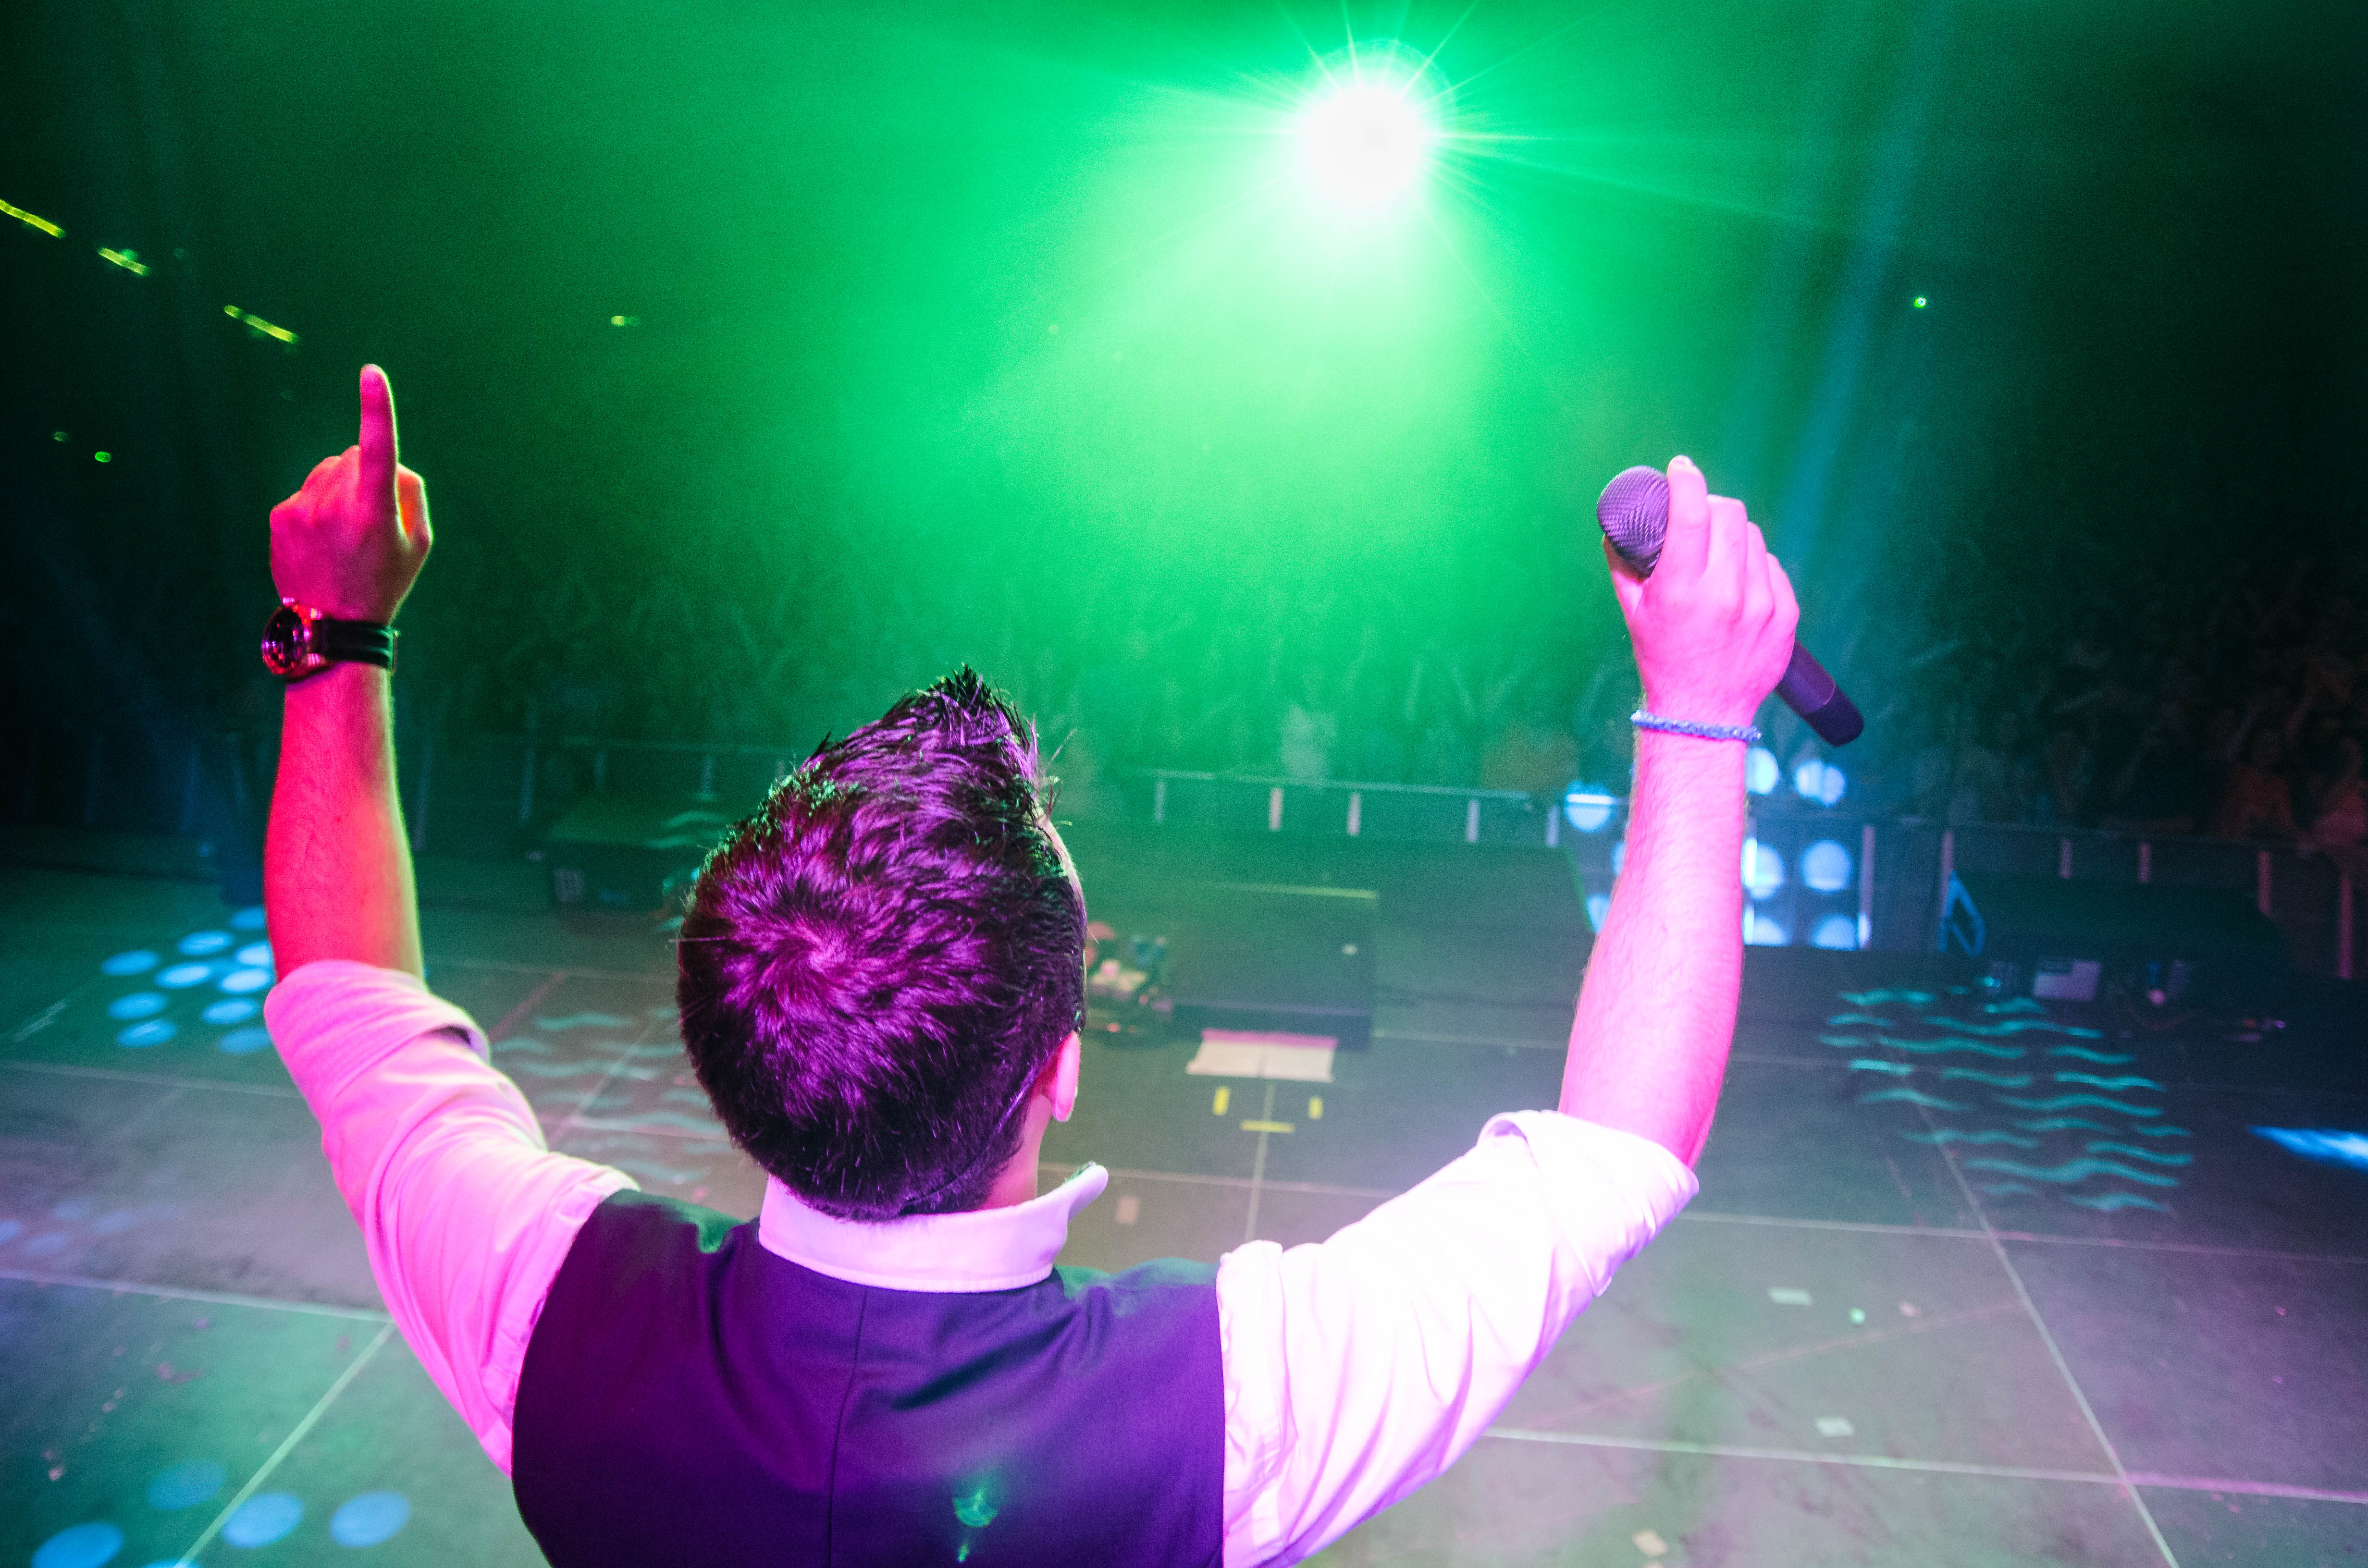 nathan-carter-at-the-marquee-cork-by-sean-smyth-15-6-14-50-of-55